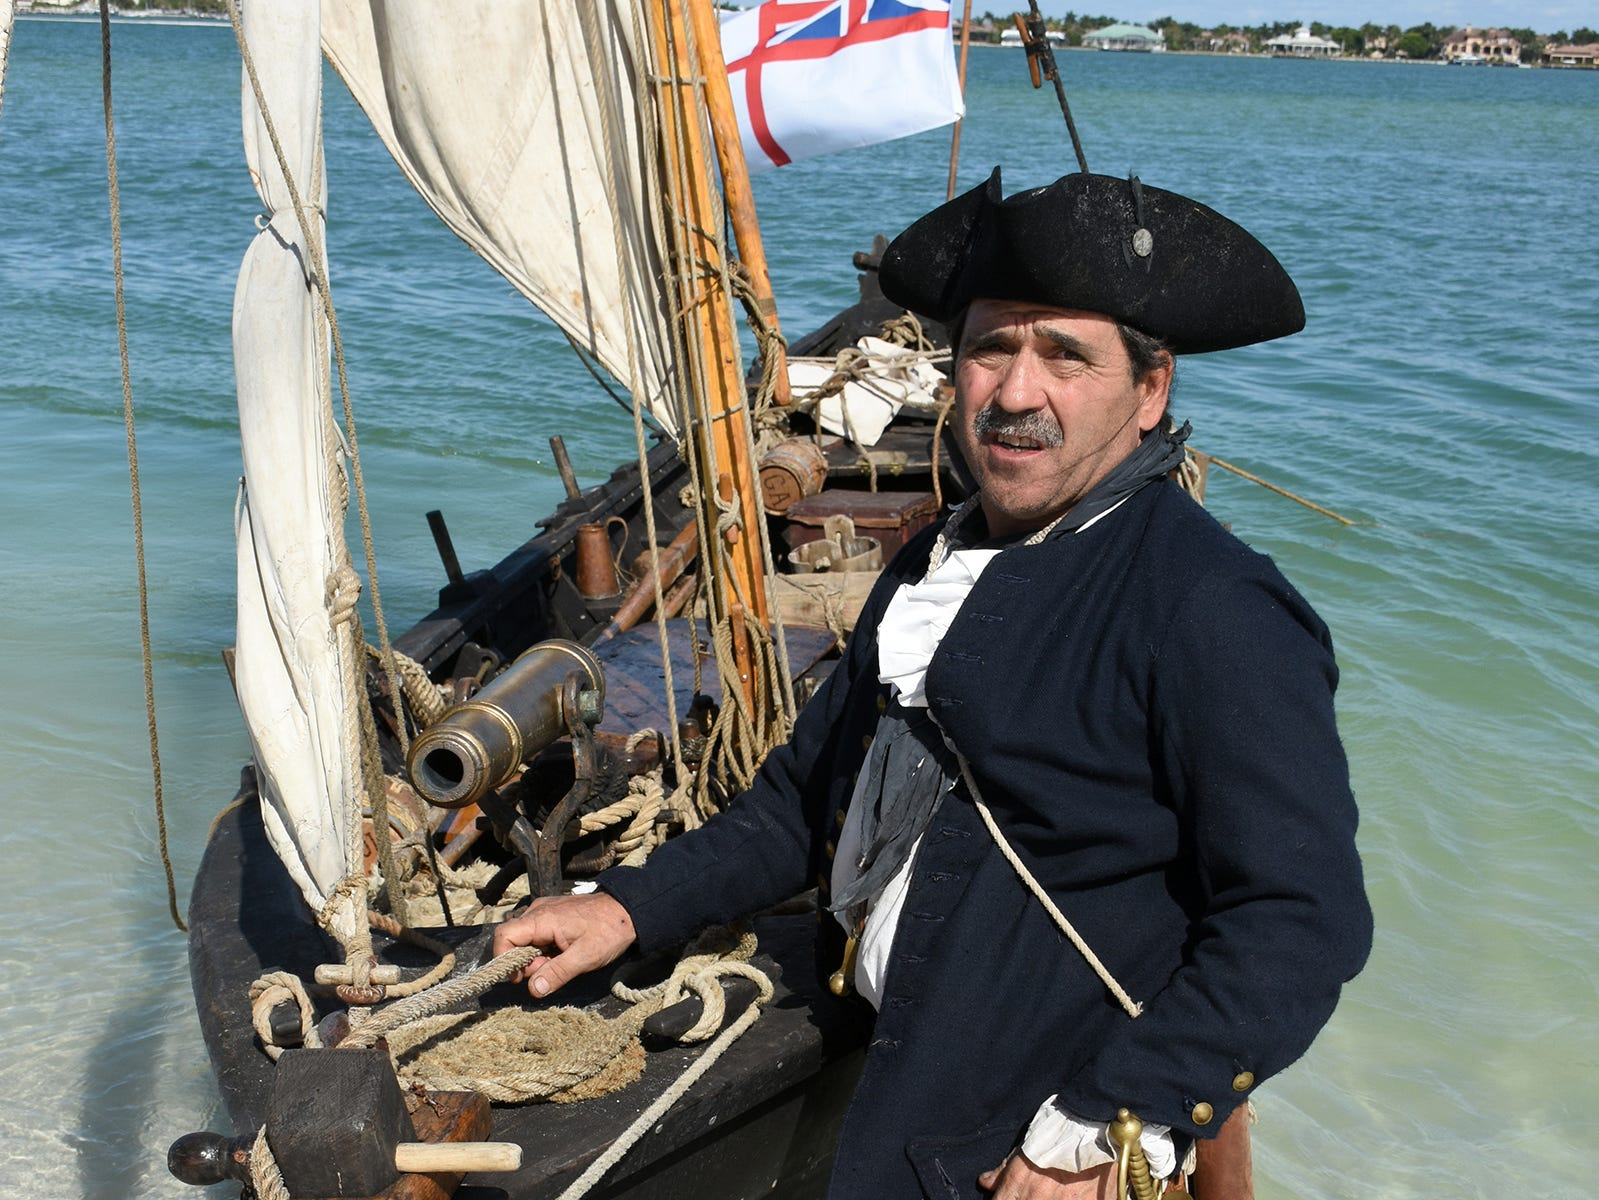 Capt. Scott Padeni with the gunboat Gen. Arnold, which he built by hand. A group of historical reenactors dedicated to living the life of 18th century swashbucklers set up a pirate camp on Kice Island, across Caxambas Pass from Cape Marco, over the weekend.